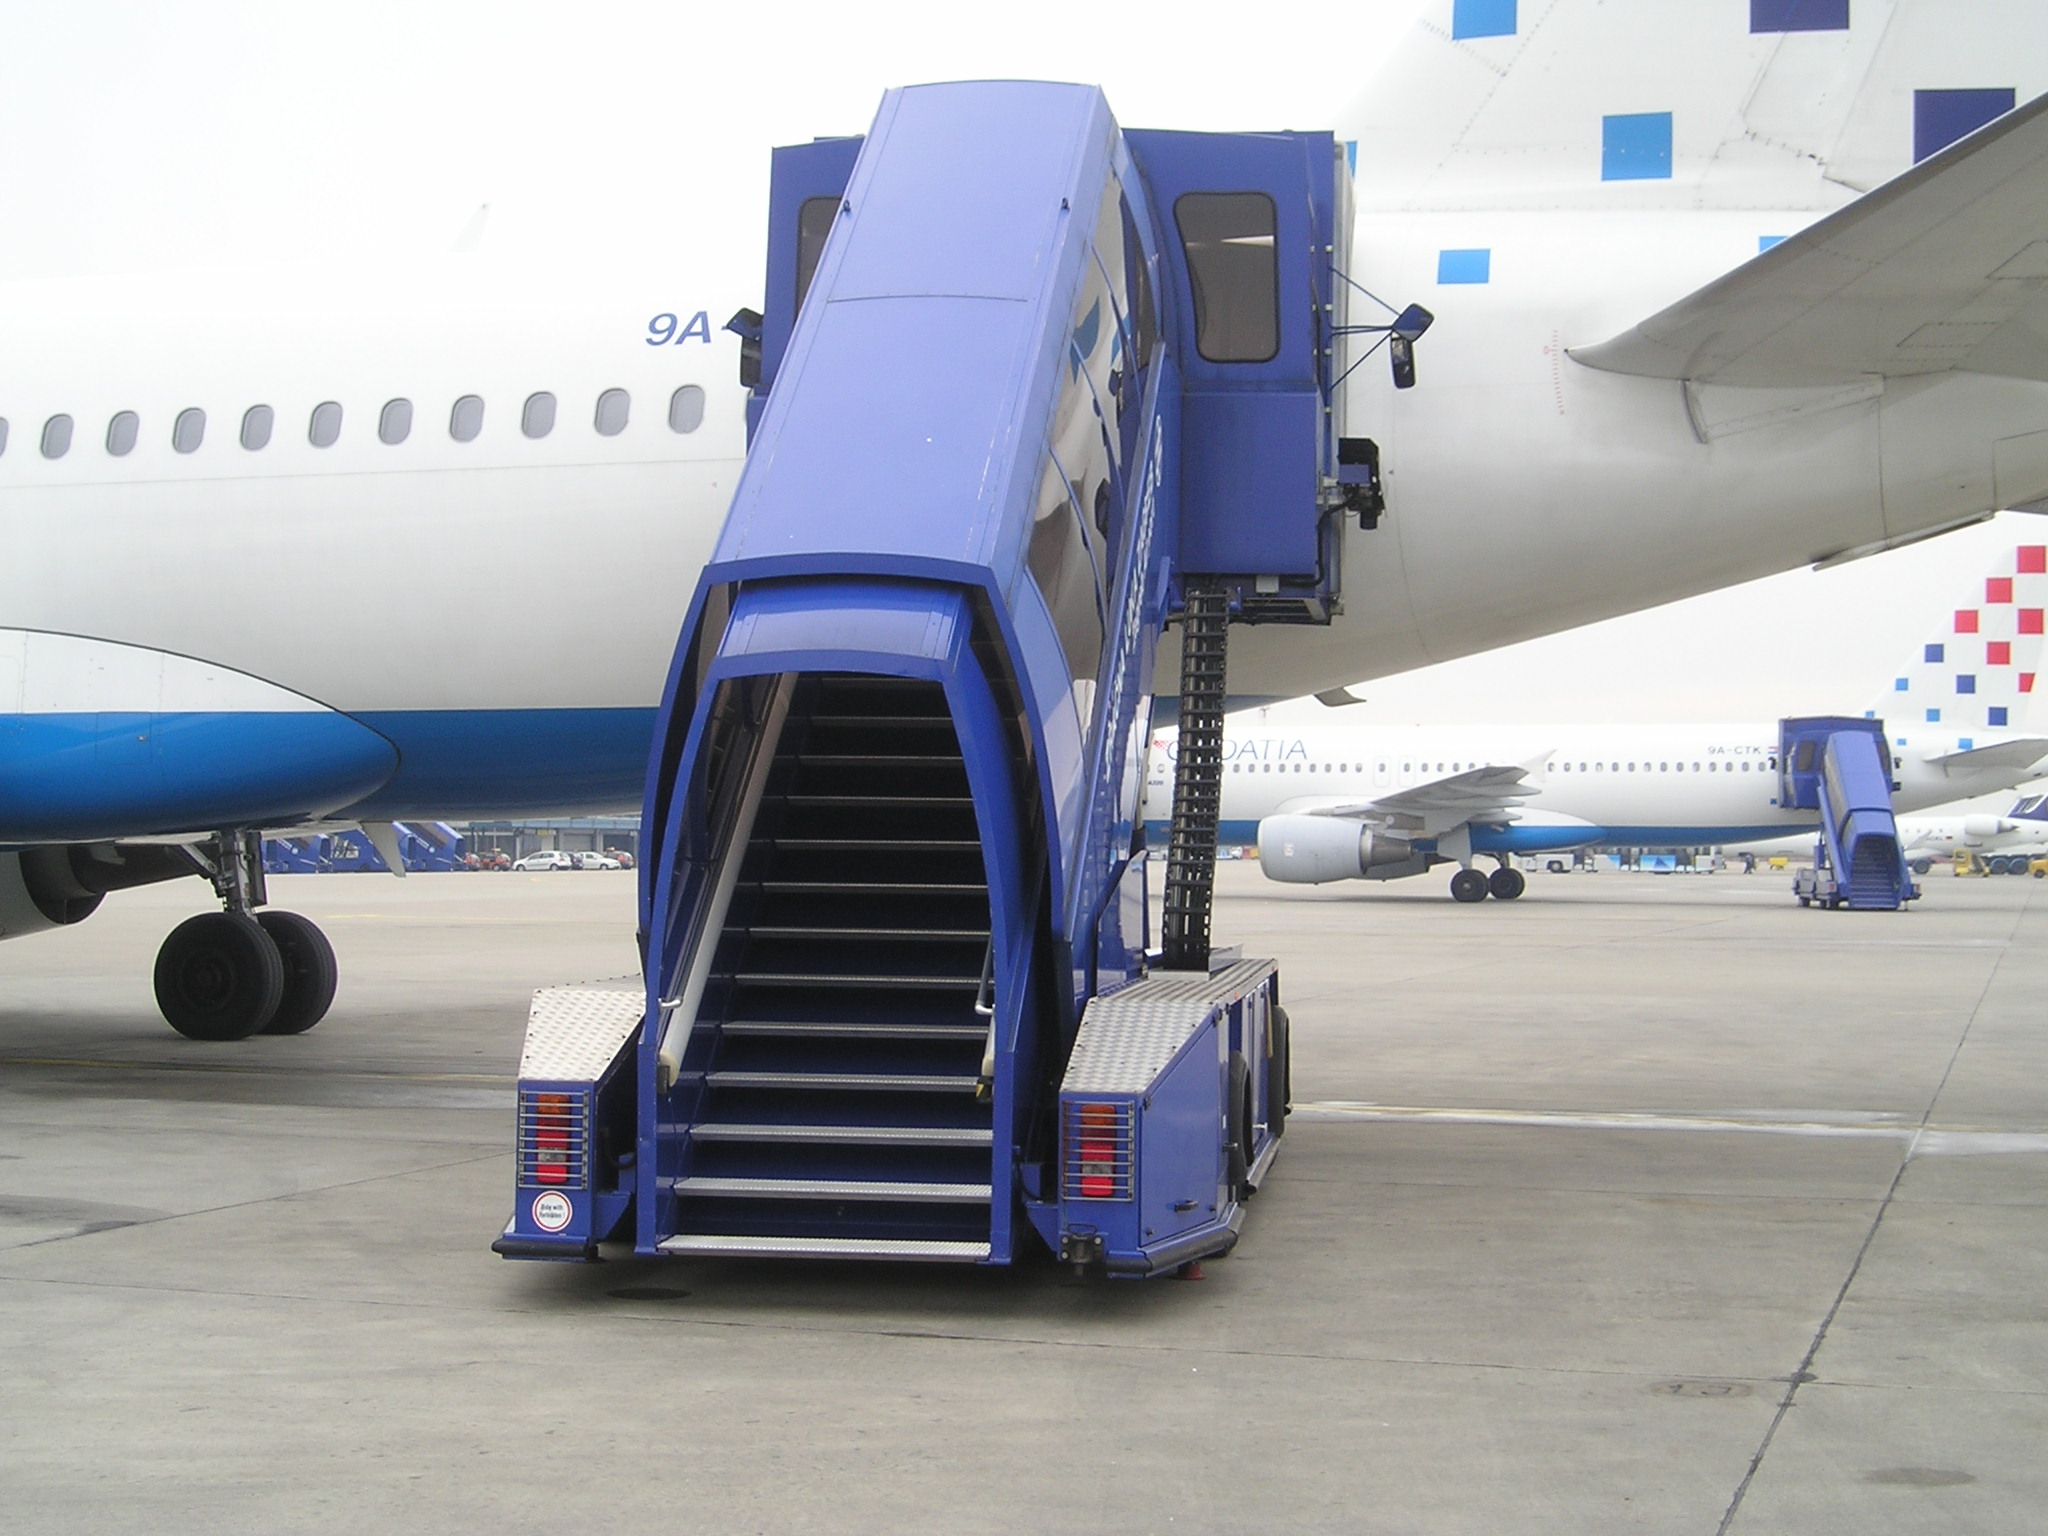 Nice File:Stairs On Aircraft.JPG